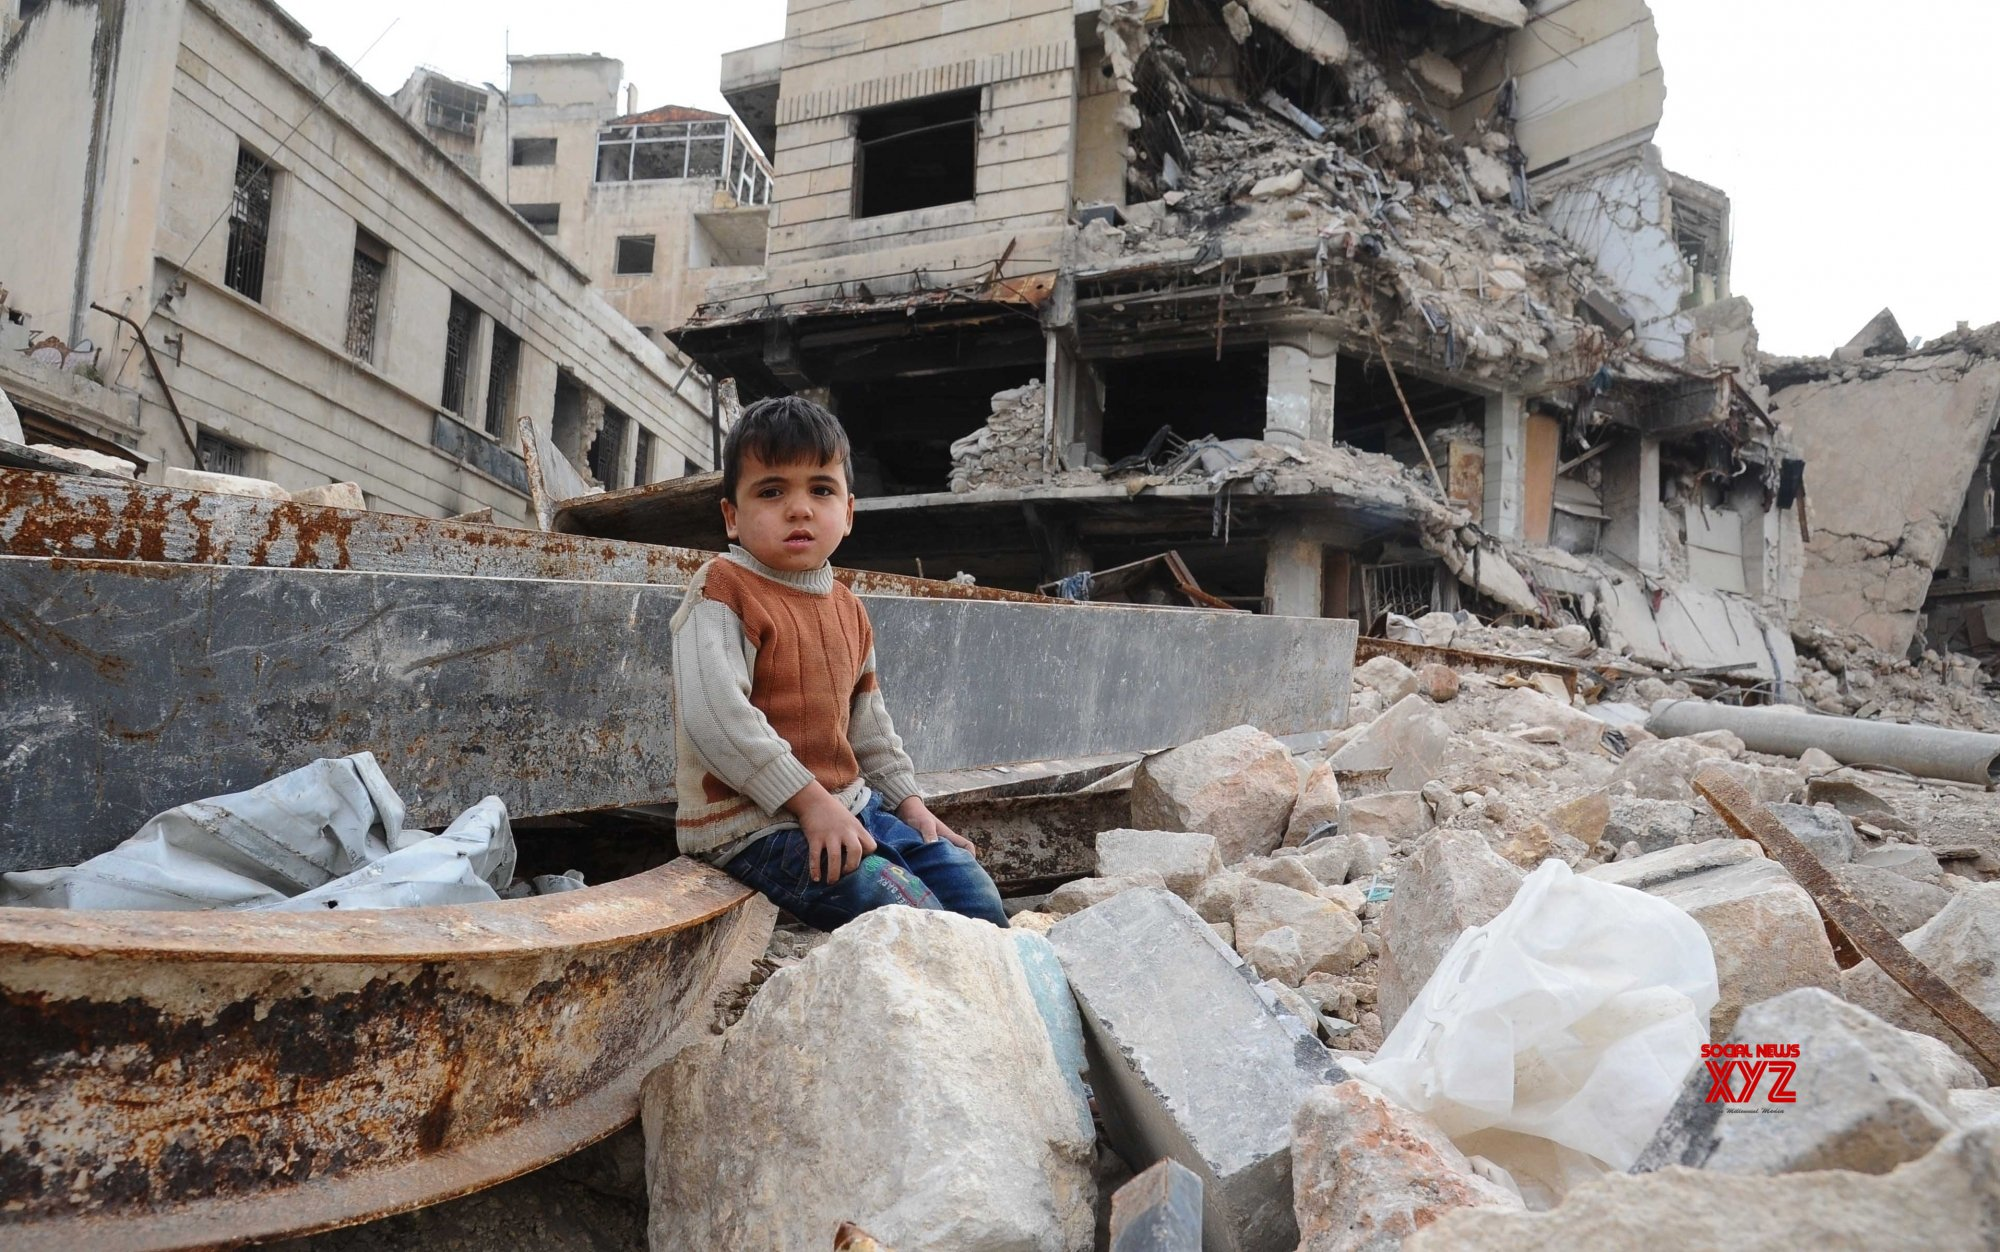 Tenth anniversary of Syrian crisis: Home truths from an eyewitness